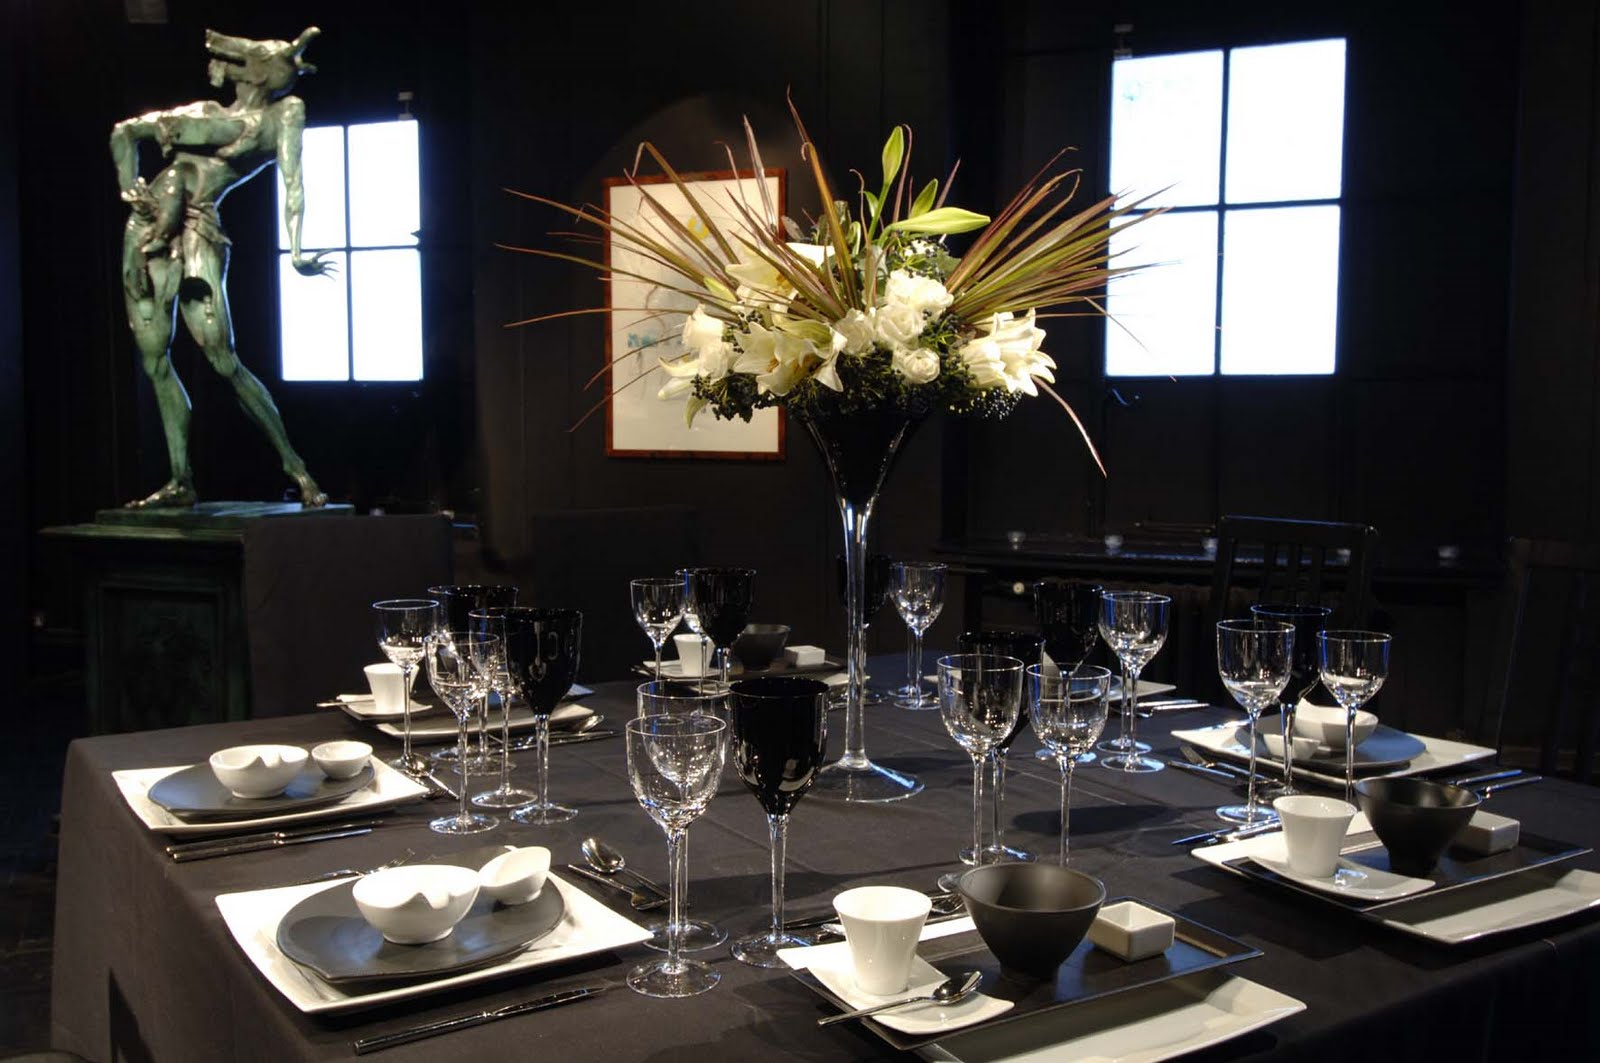 Clare Beckwith Weddings Events Parties: Stylish table settings